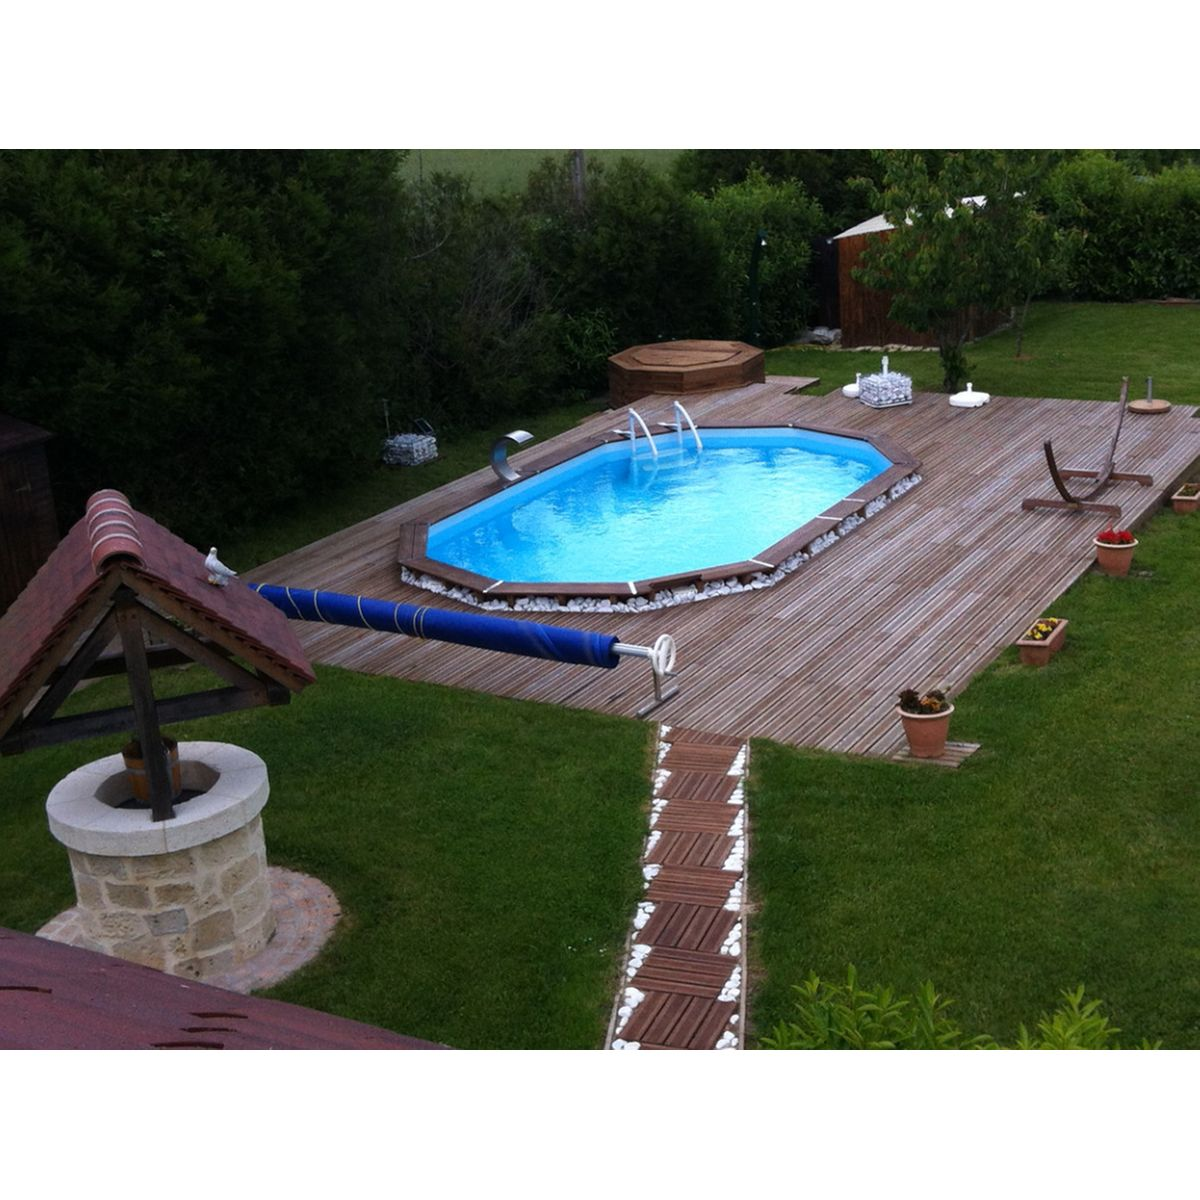 Piscine hors sol bois topiwall for Deco piscine hors sol